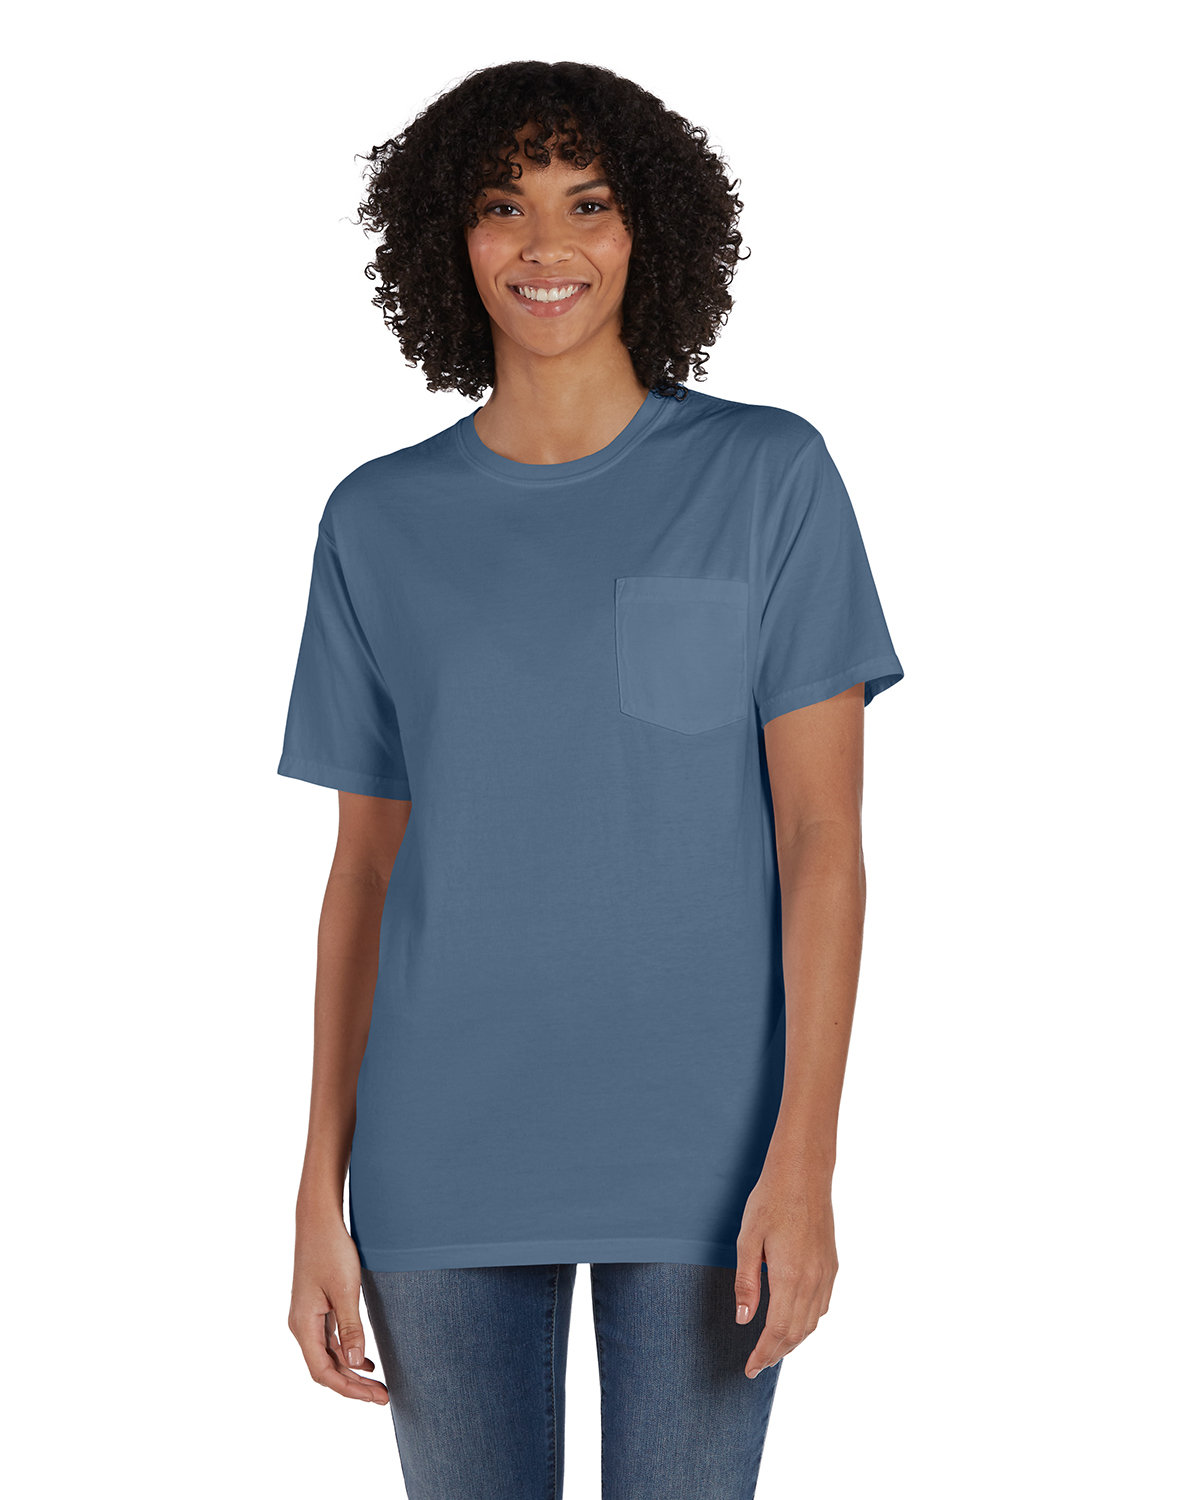 ComfortWash by Hanes Unisex Garment-Dyed T-Shirt with Pocket SALTWATER